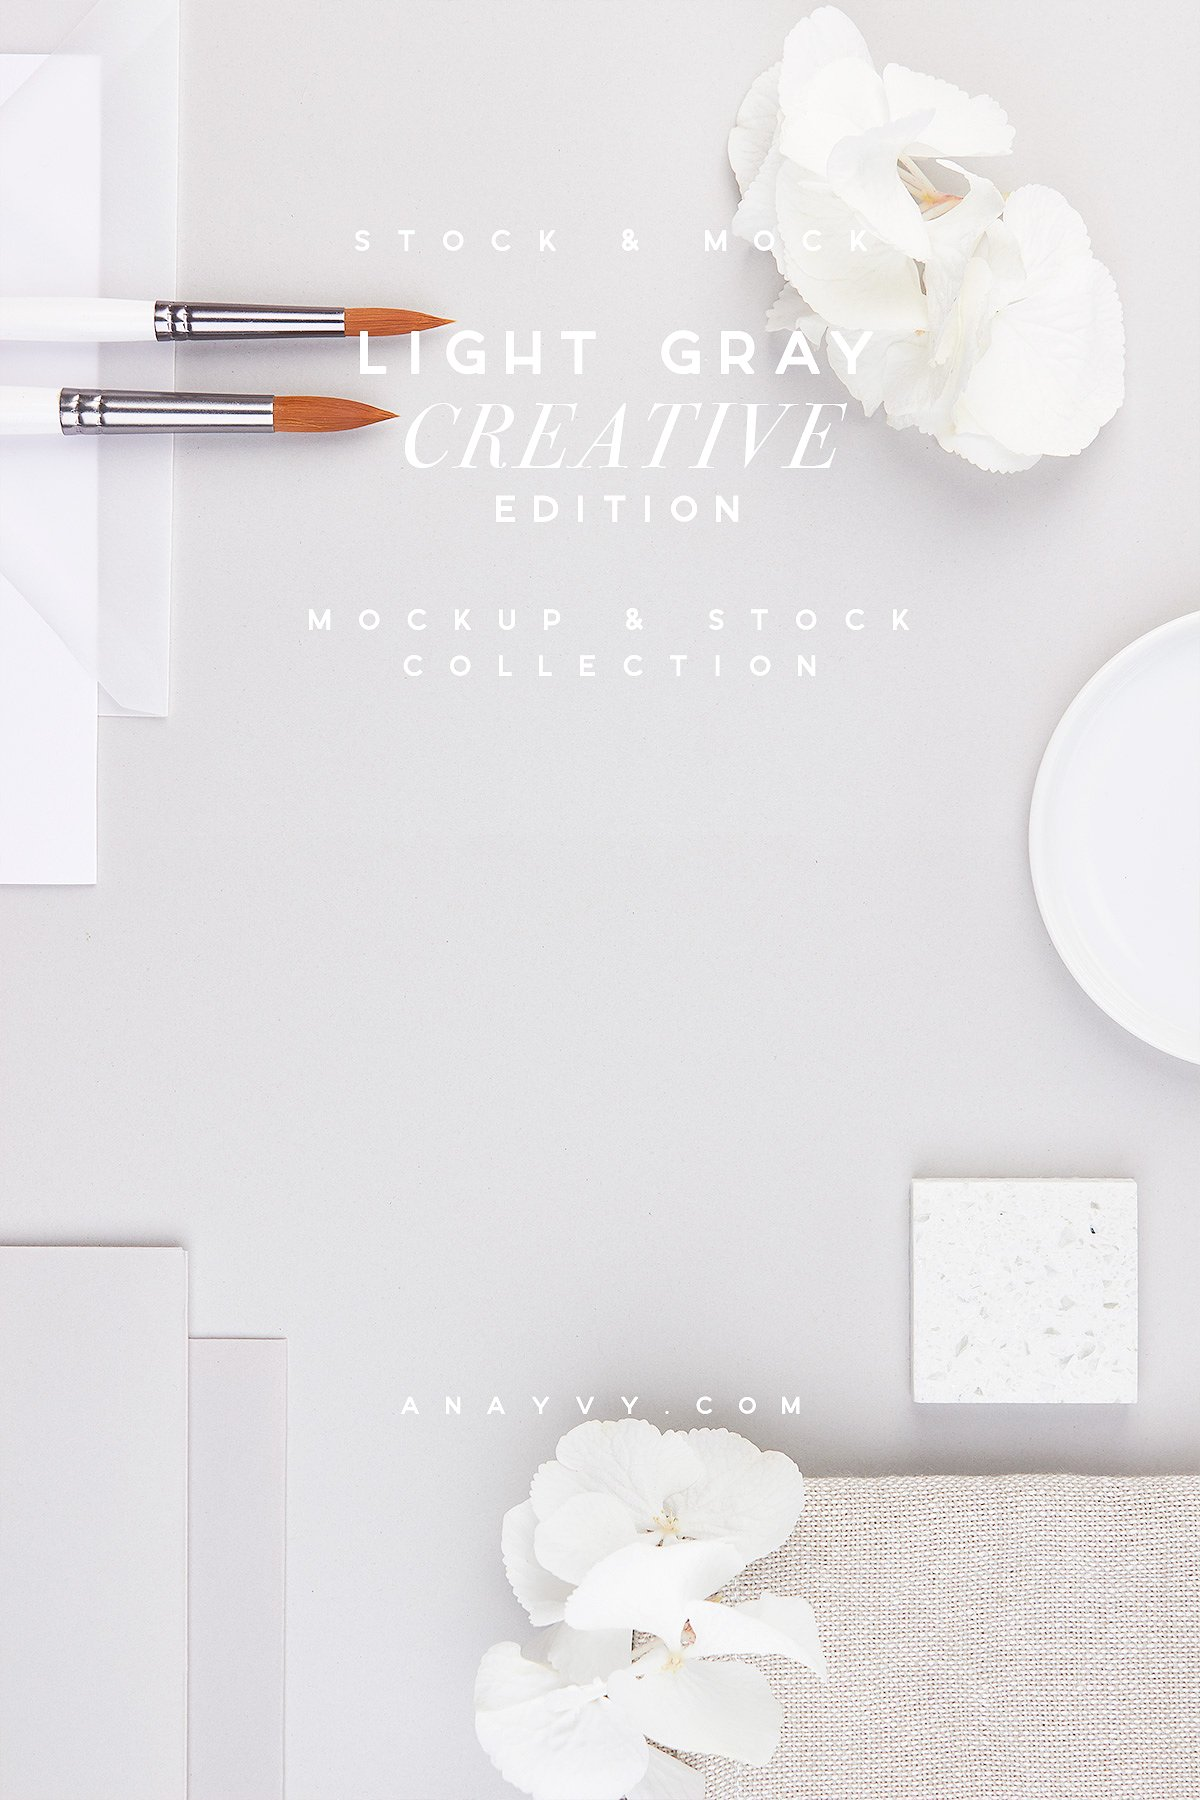 00a-creative-market-stock-image-mockup-collection-social-media-fashion-blogger-light-grey-sophisticated-white-silver-